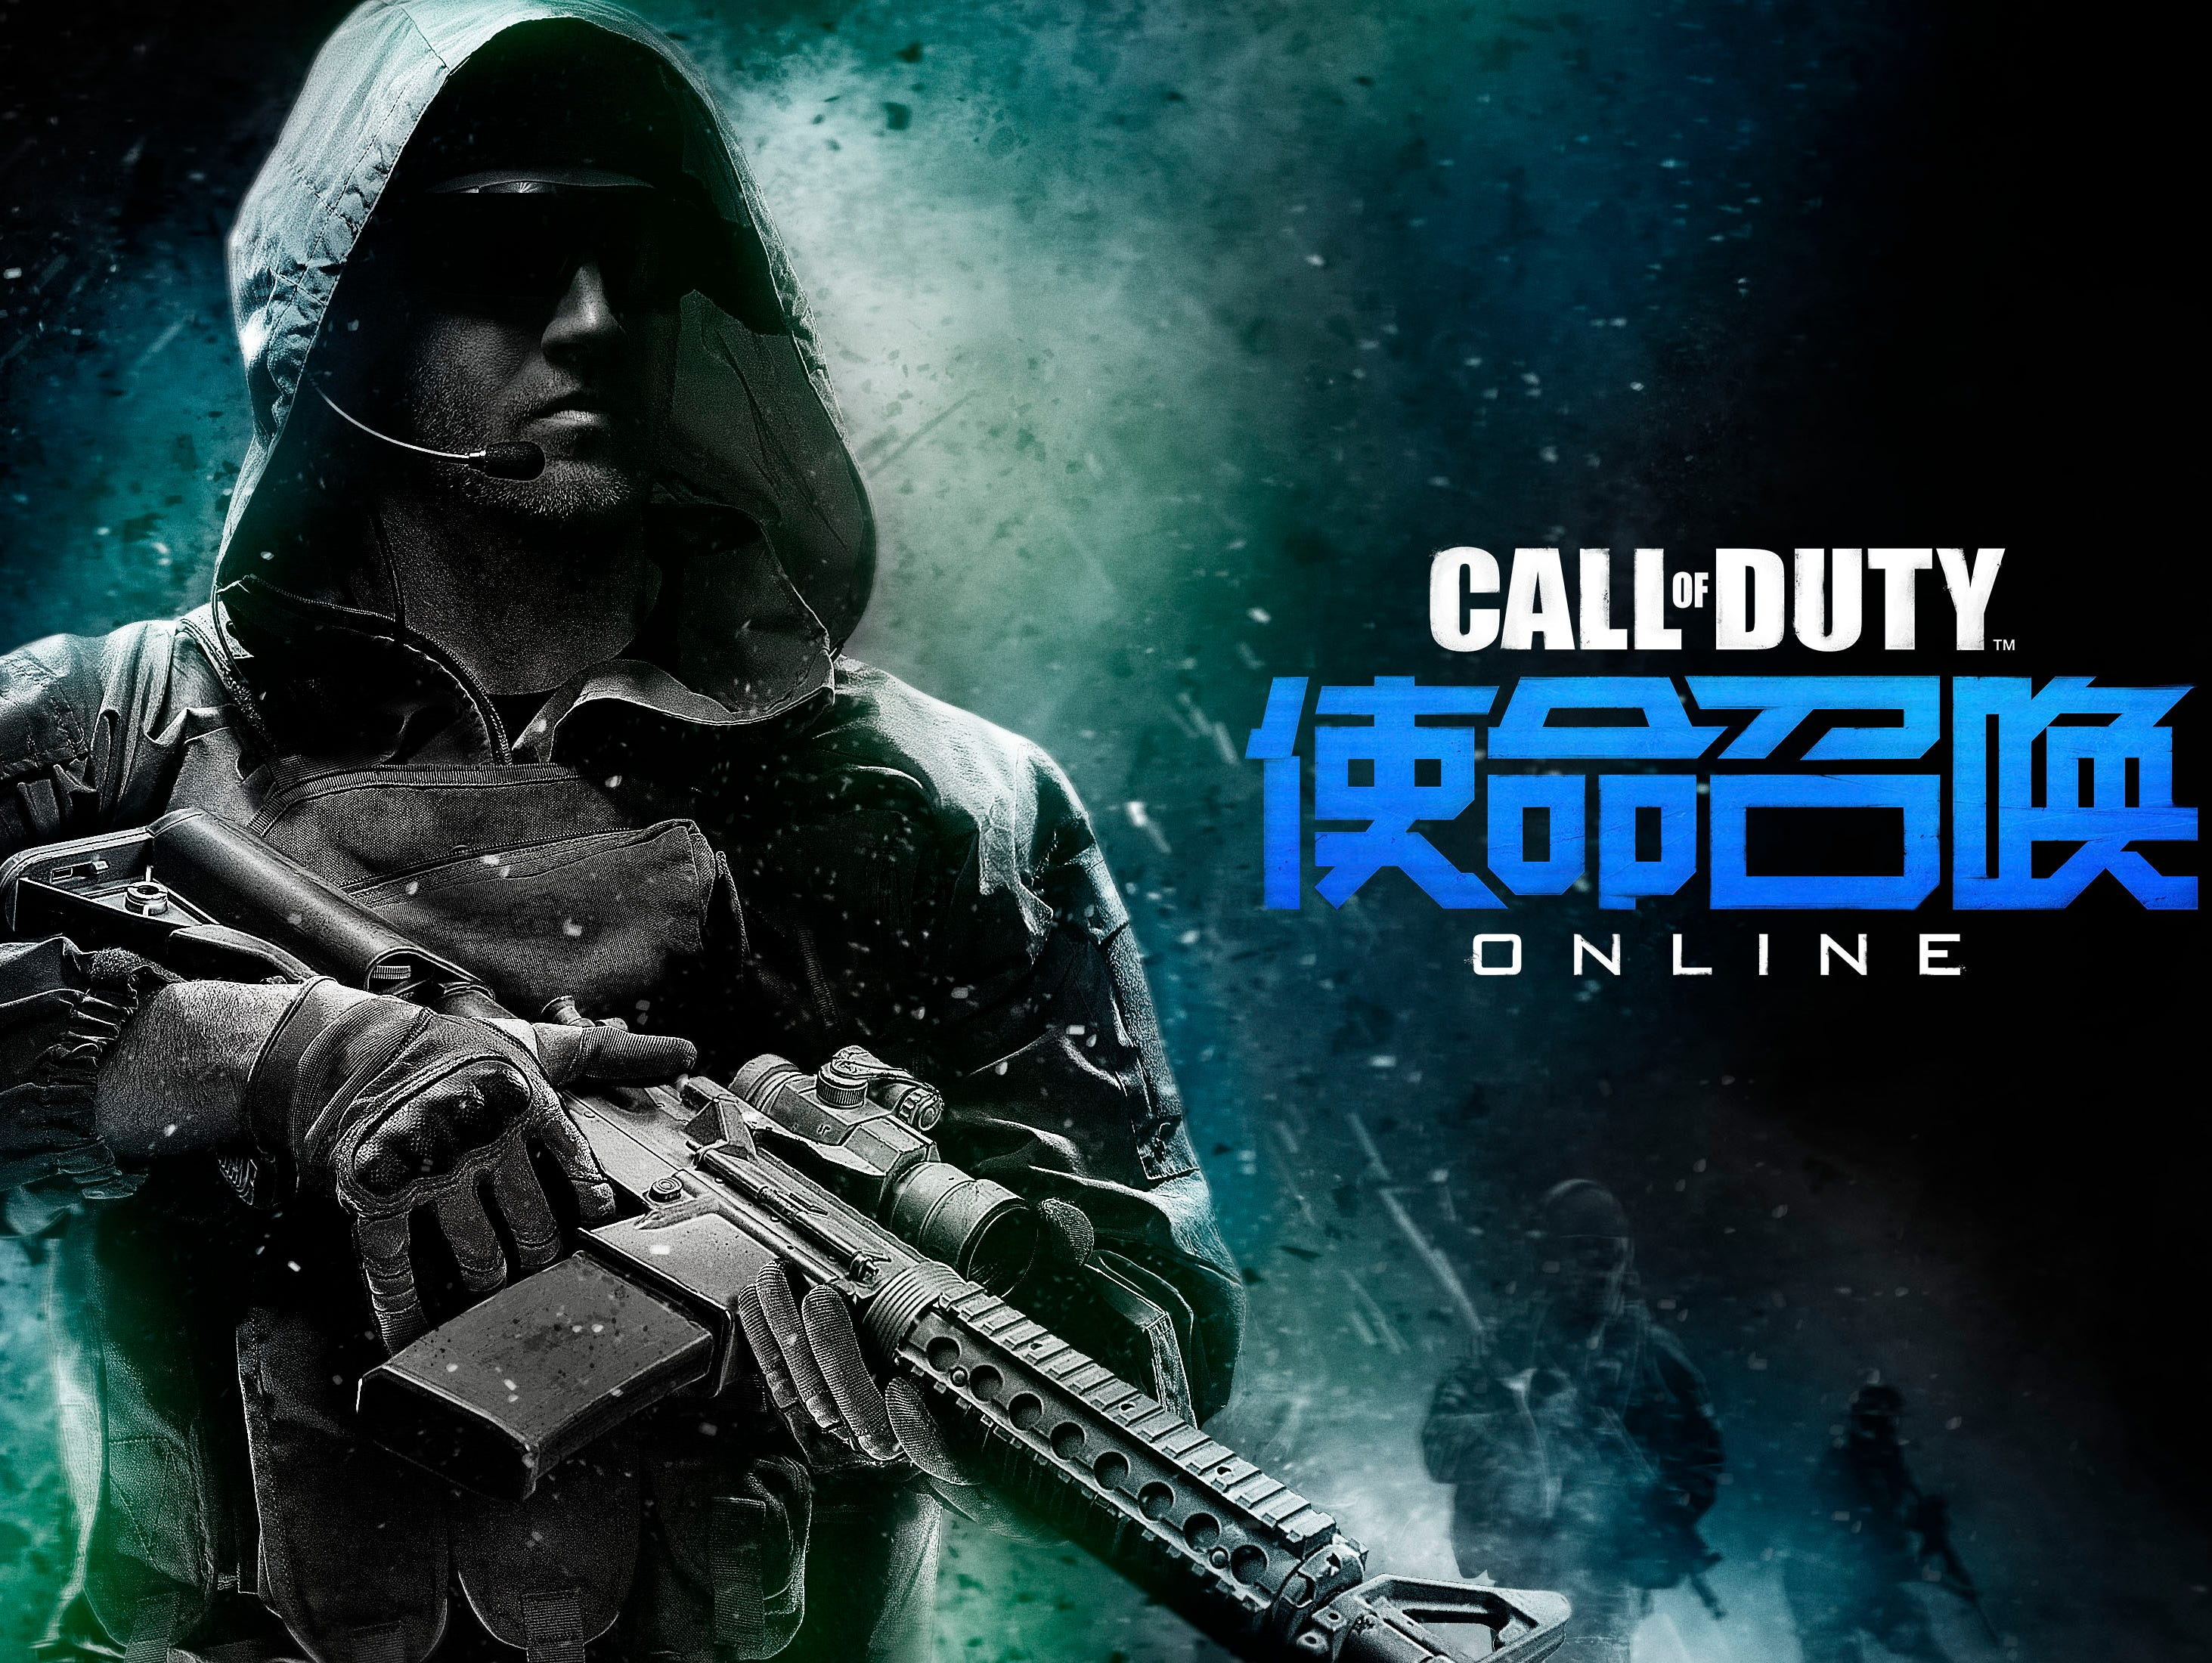 Promotional art for the video game 'Call of Duty Online,' a free-to-play first-person shooter available in China from Activision and Tencent.